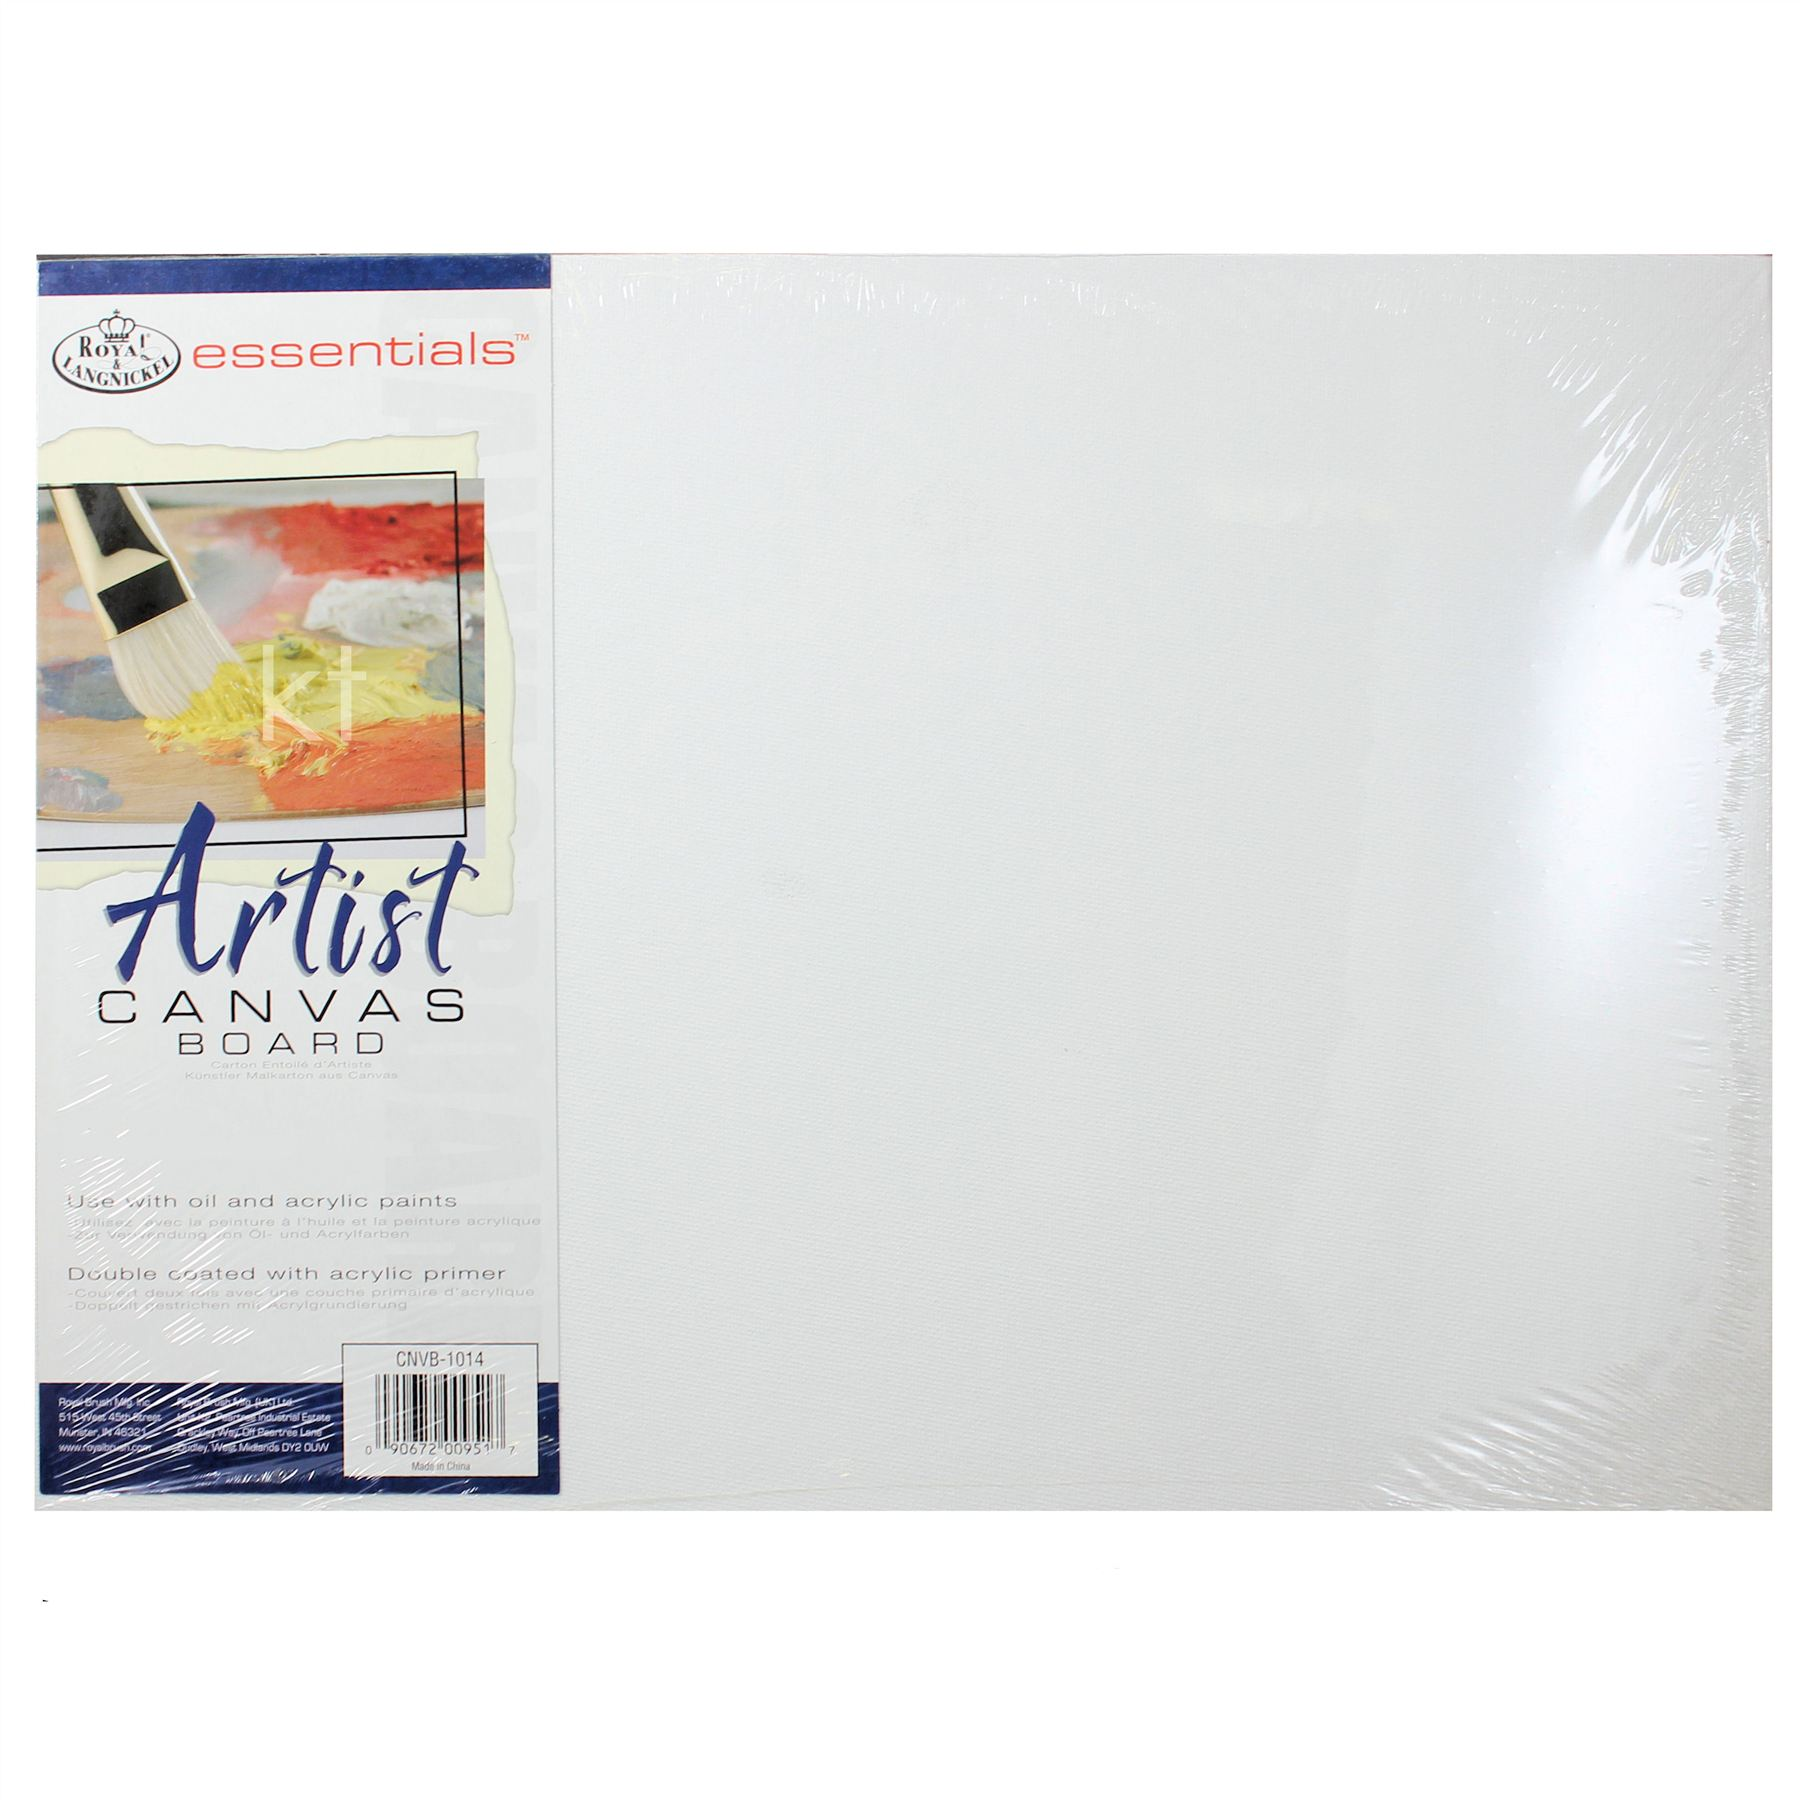 How to Save Money on Oil Paint Supplies